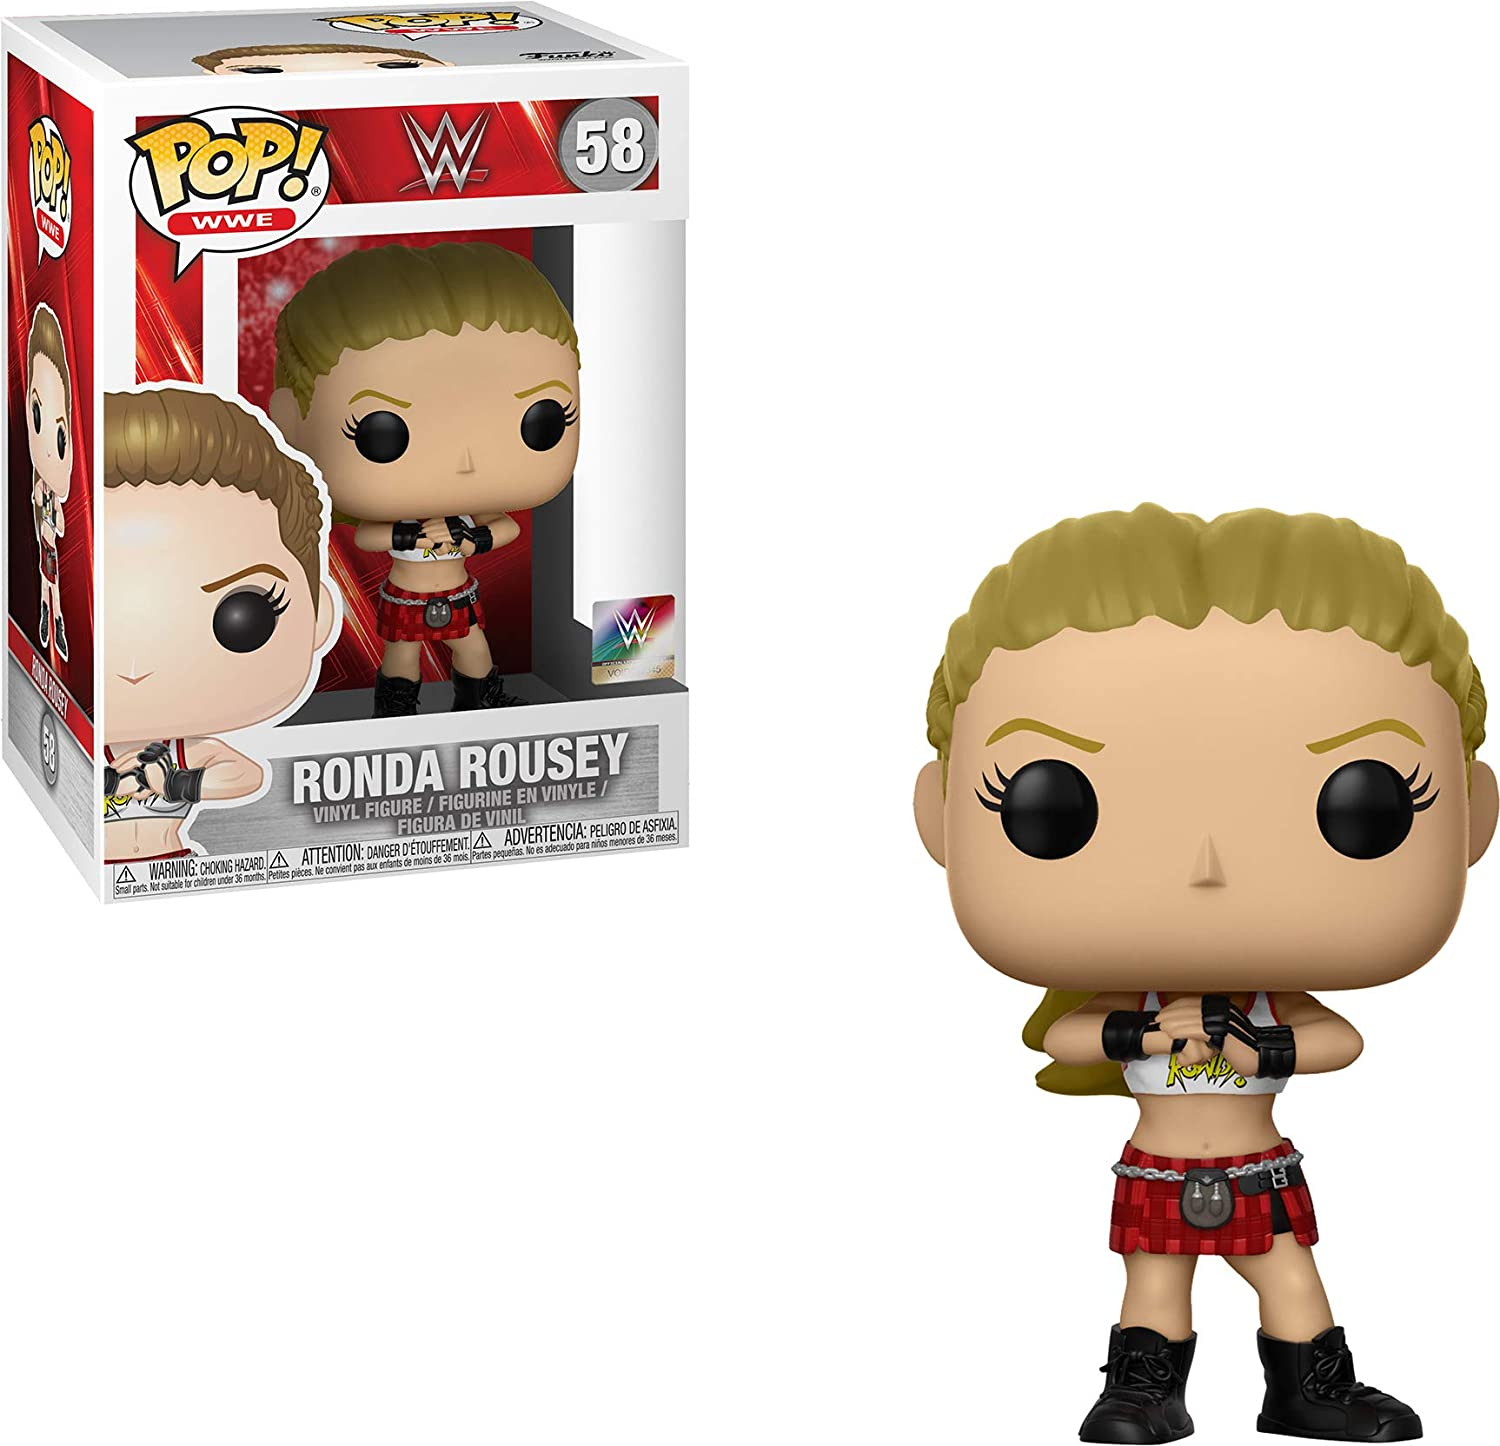 Funko 35922 Pop - Vinilo Decorativo para Pared, diseño de Ronda Rousey,  Multicolor: Amazon.es: Juguetes y juegos